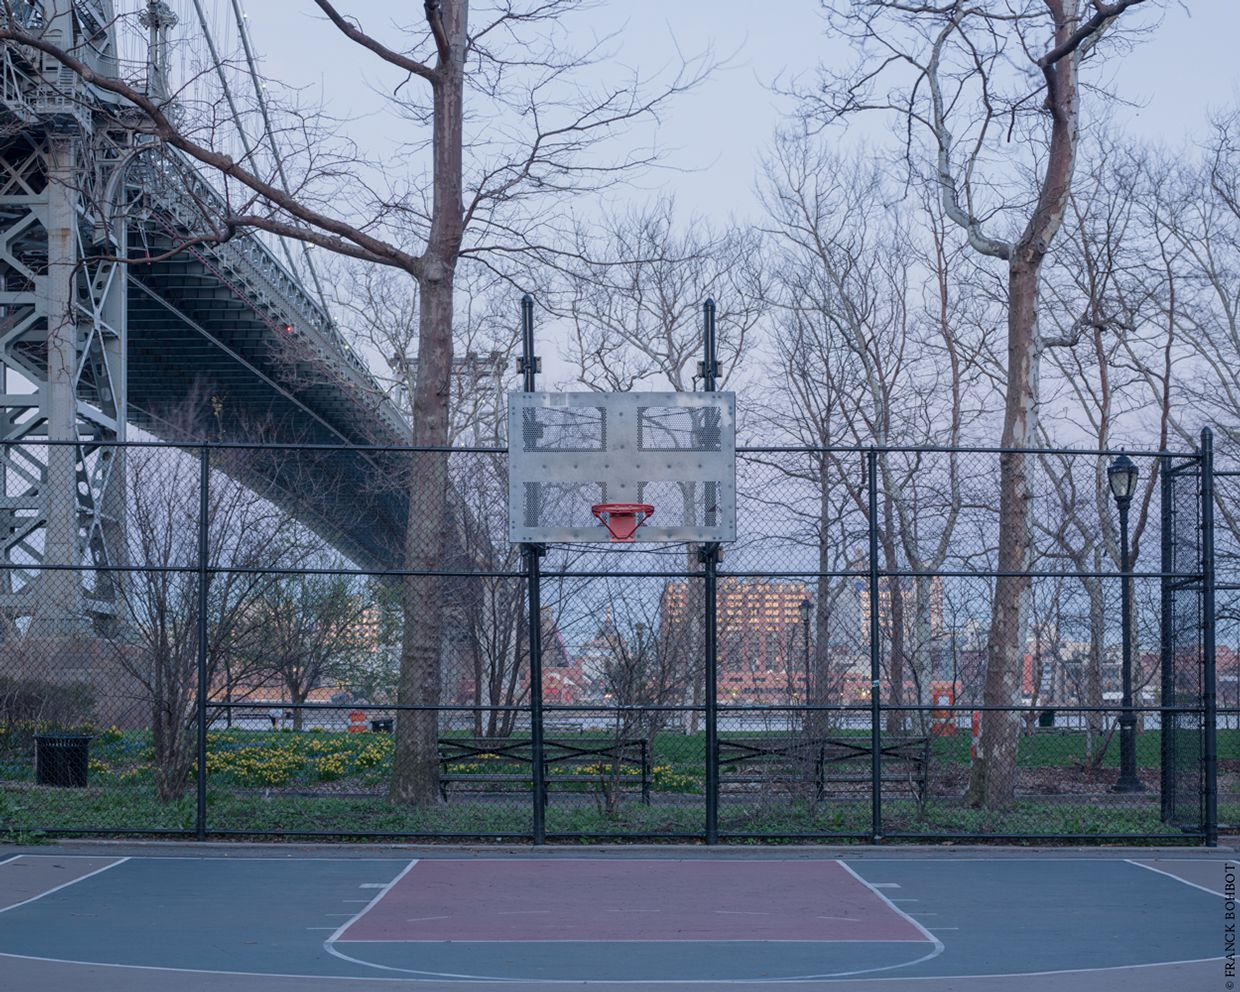 basketball places 8